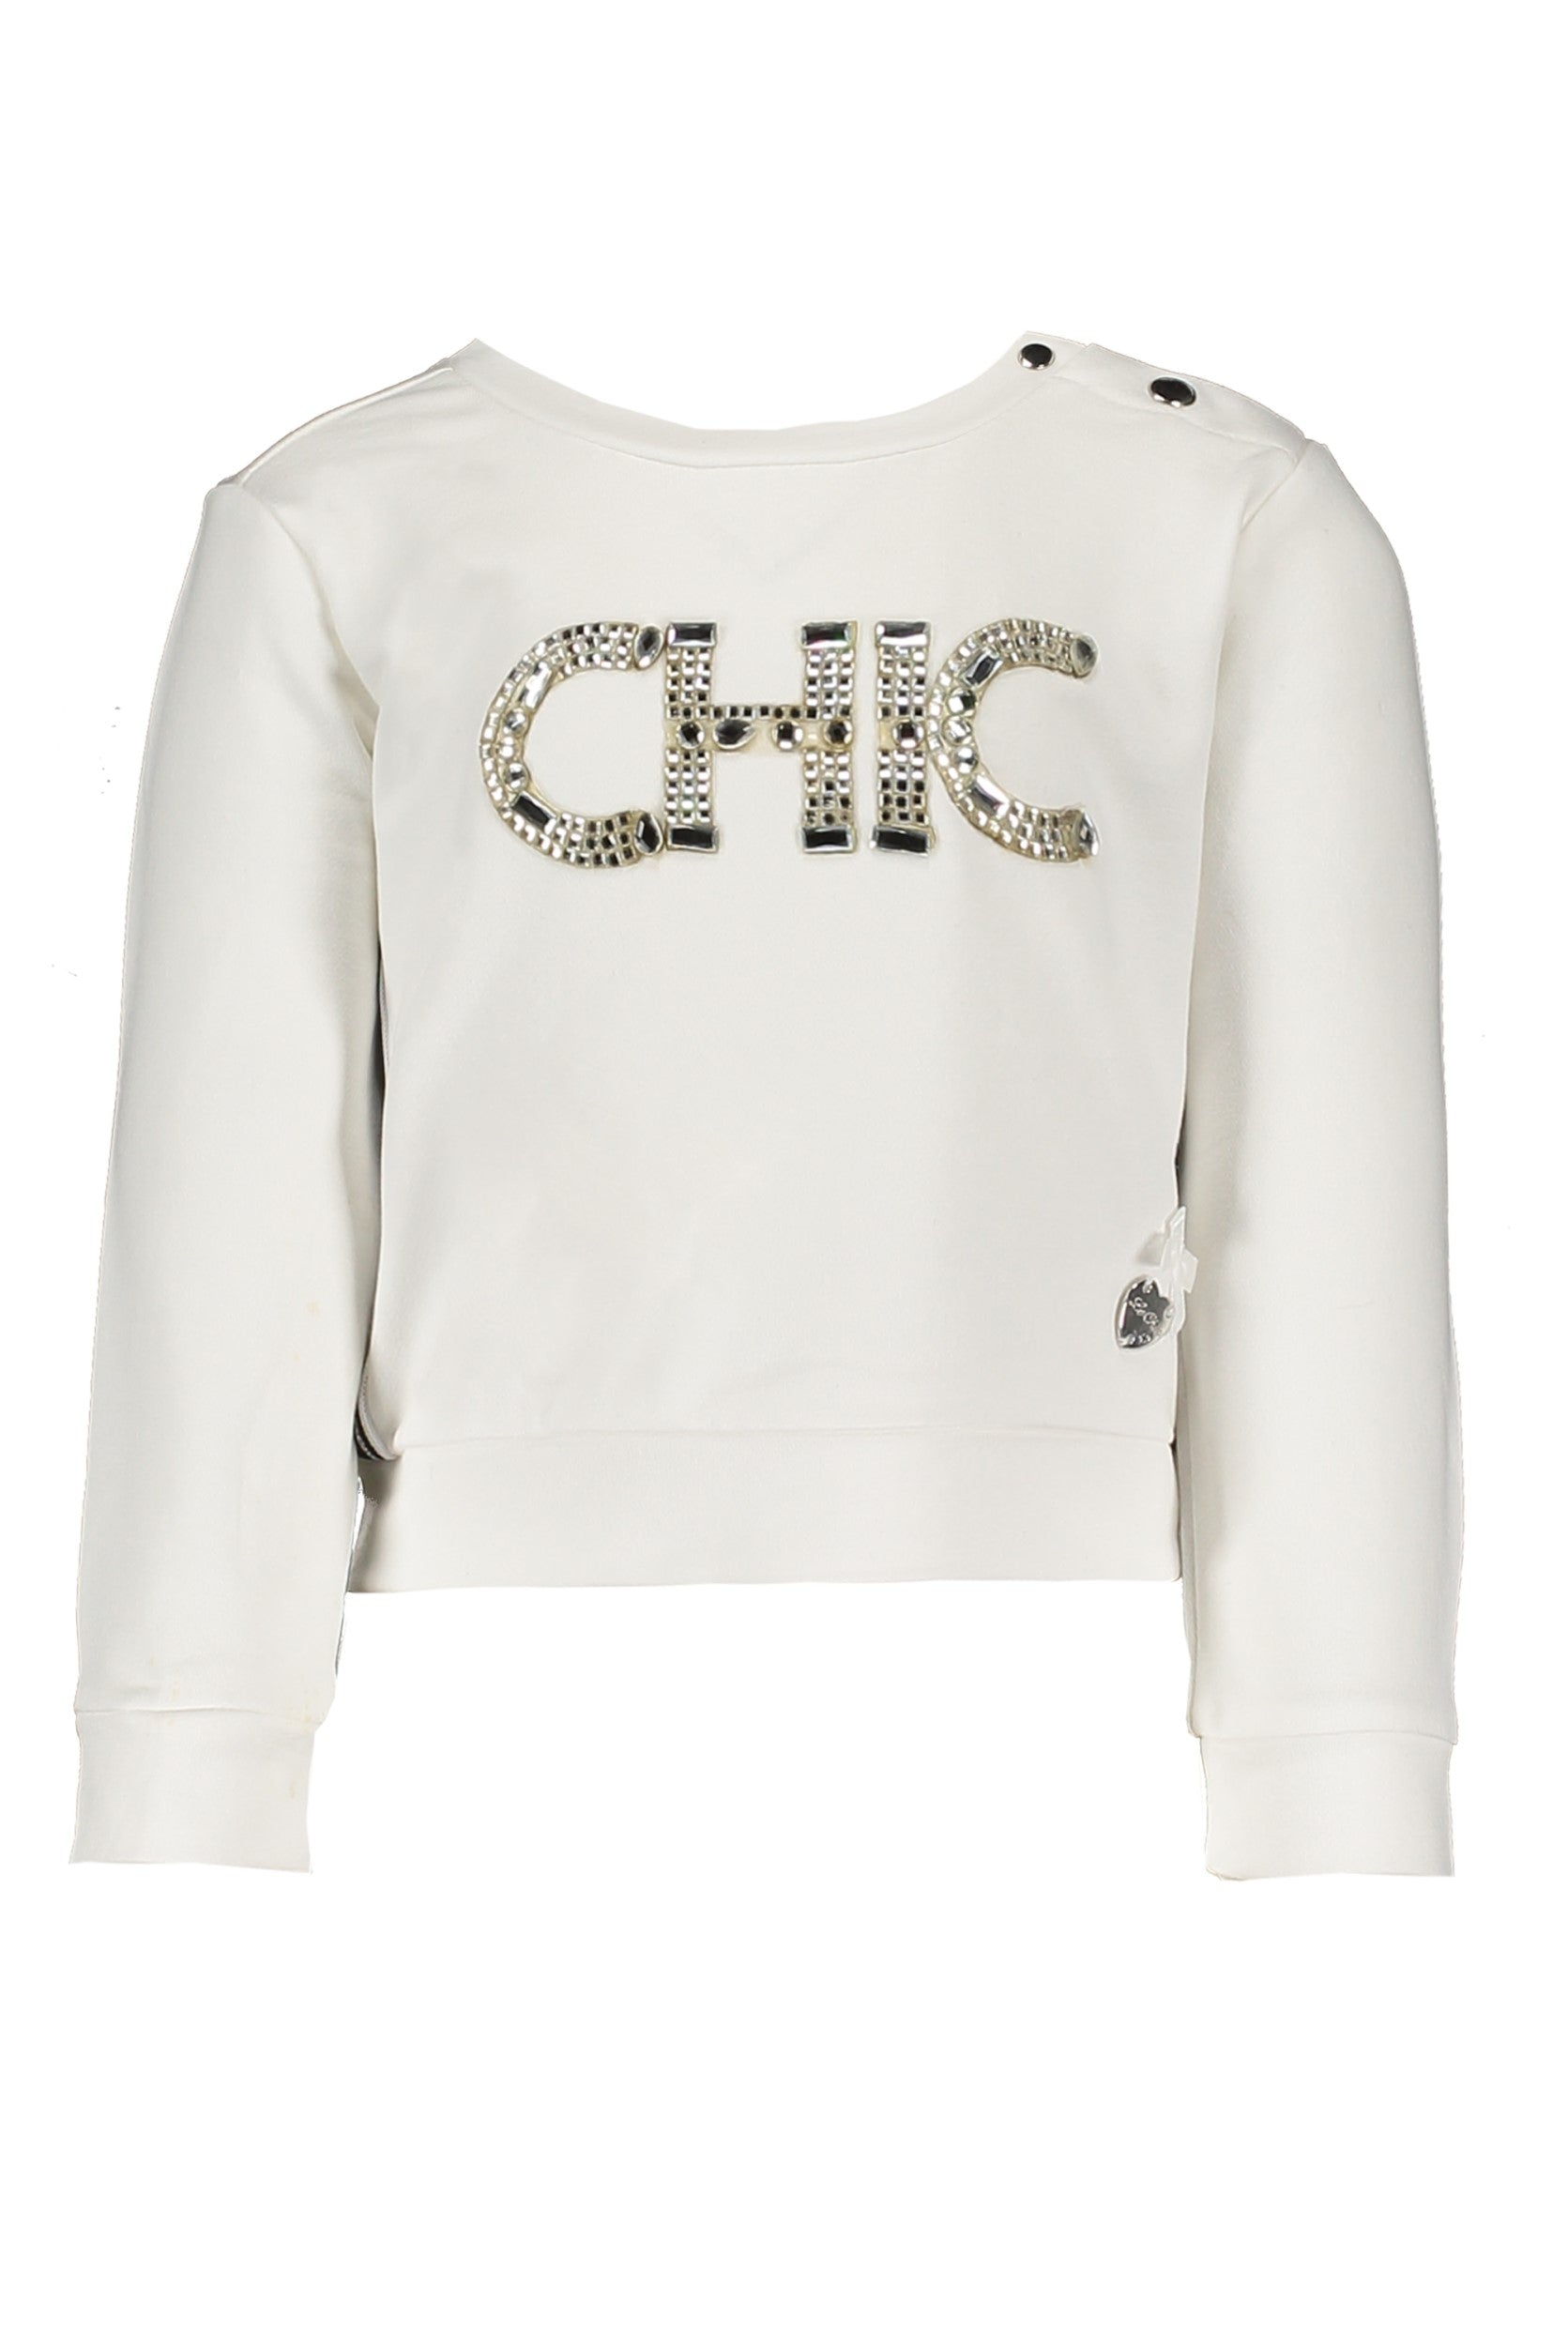 Lechic White Chic Sweater - The Mango Tree